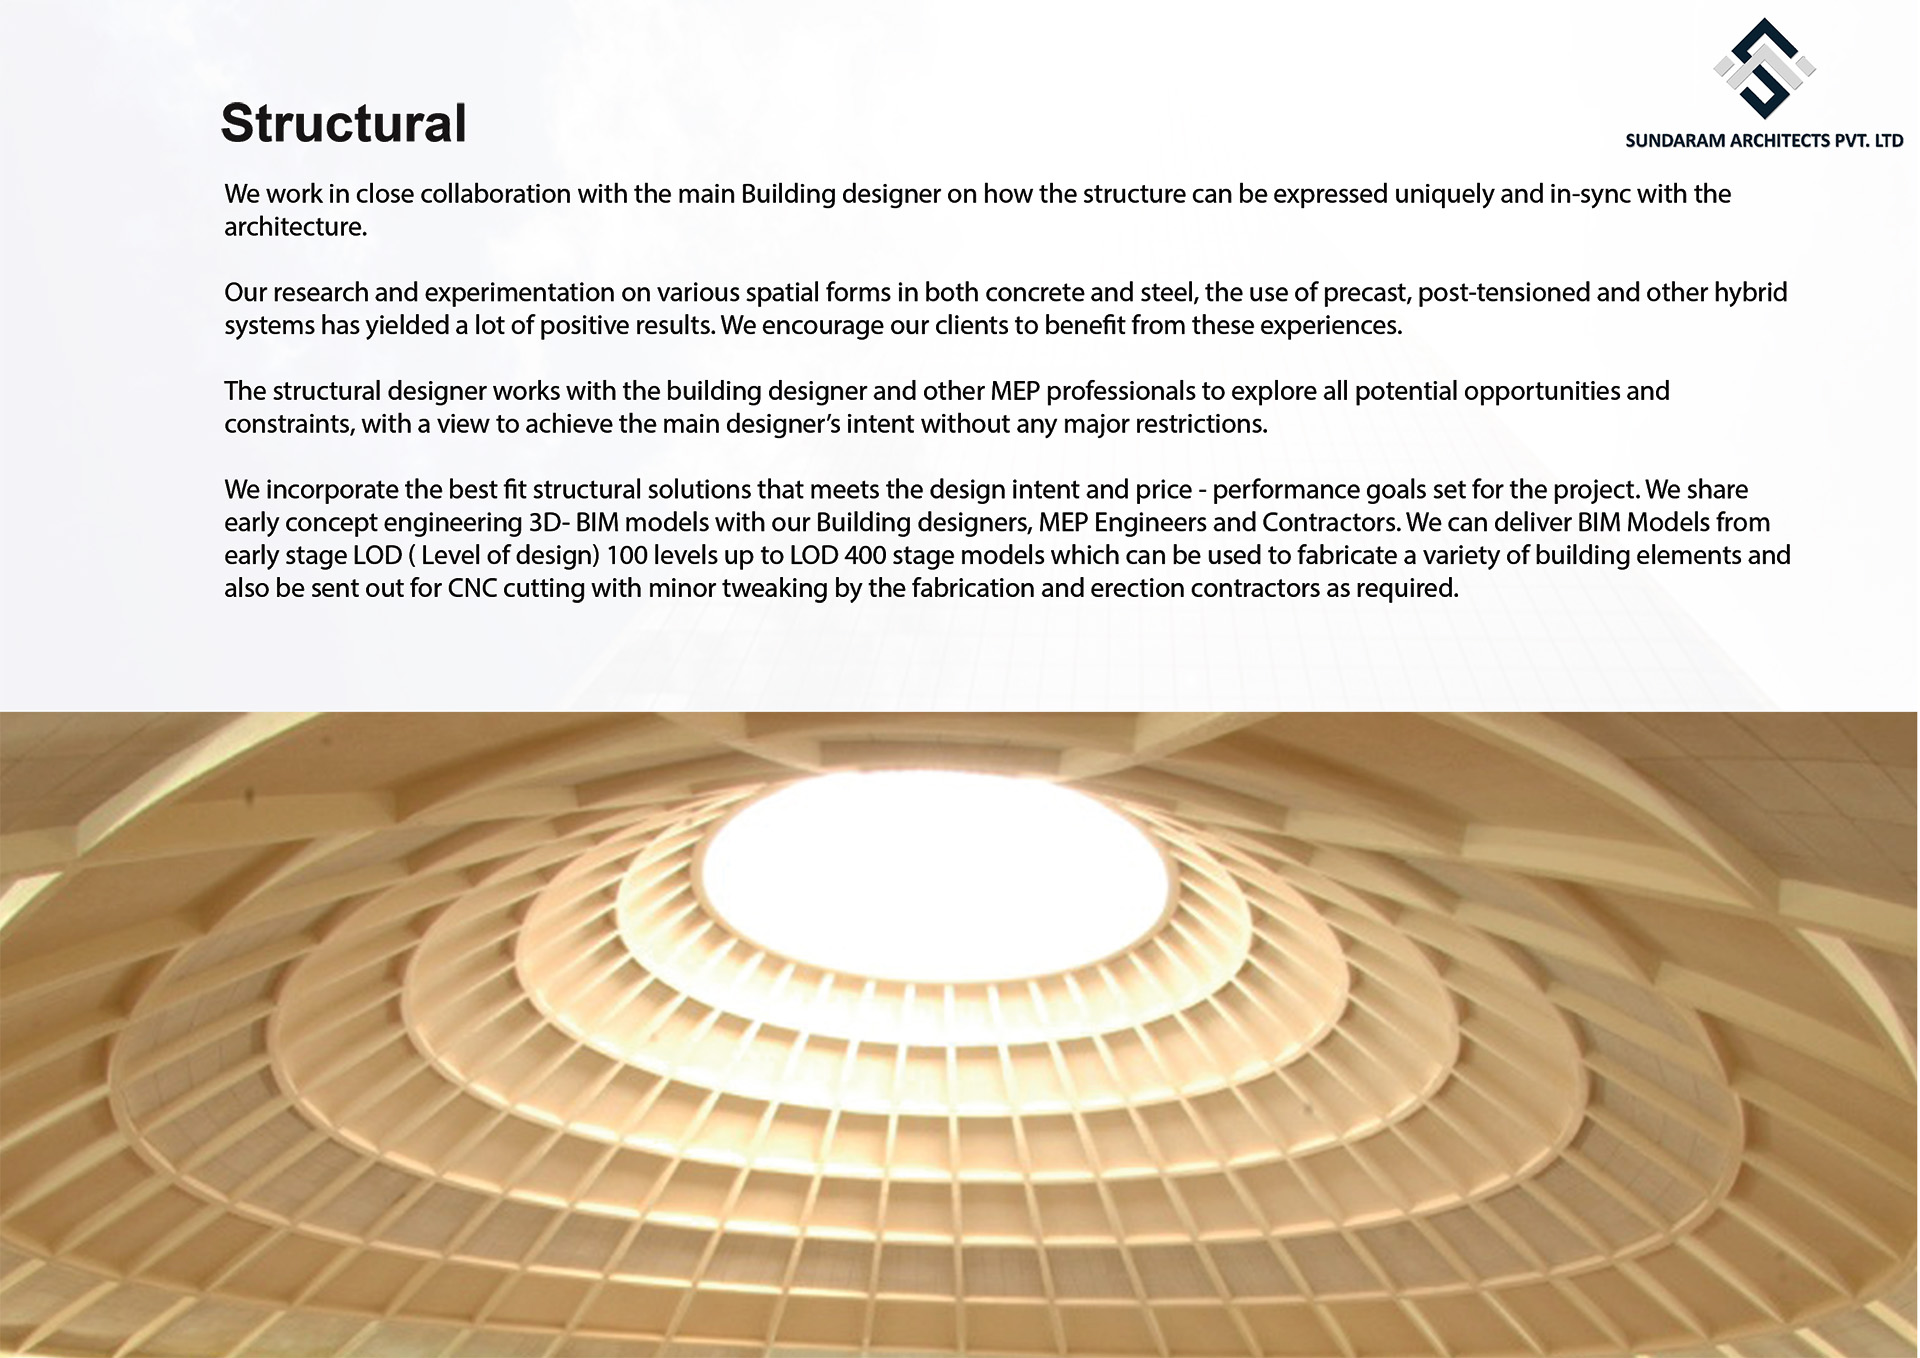 Structural Services for Sundaram Architects - Best Structural Engineering & Structural BIM Consultancy Firm in Bangalore, India